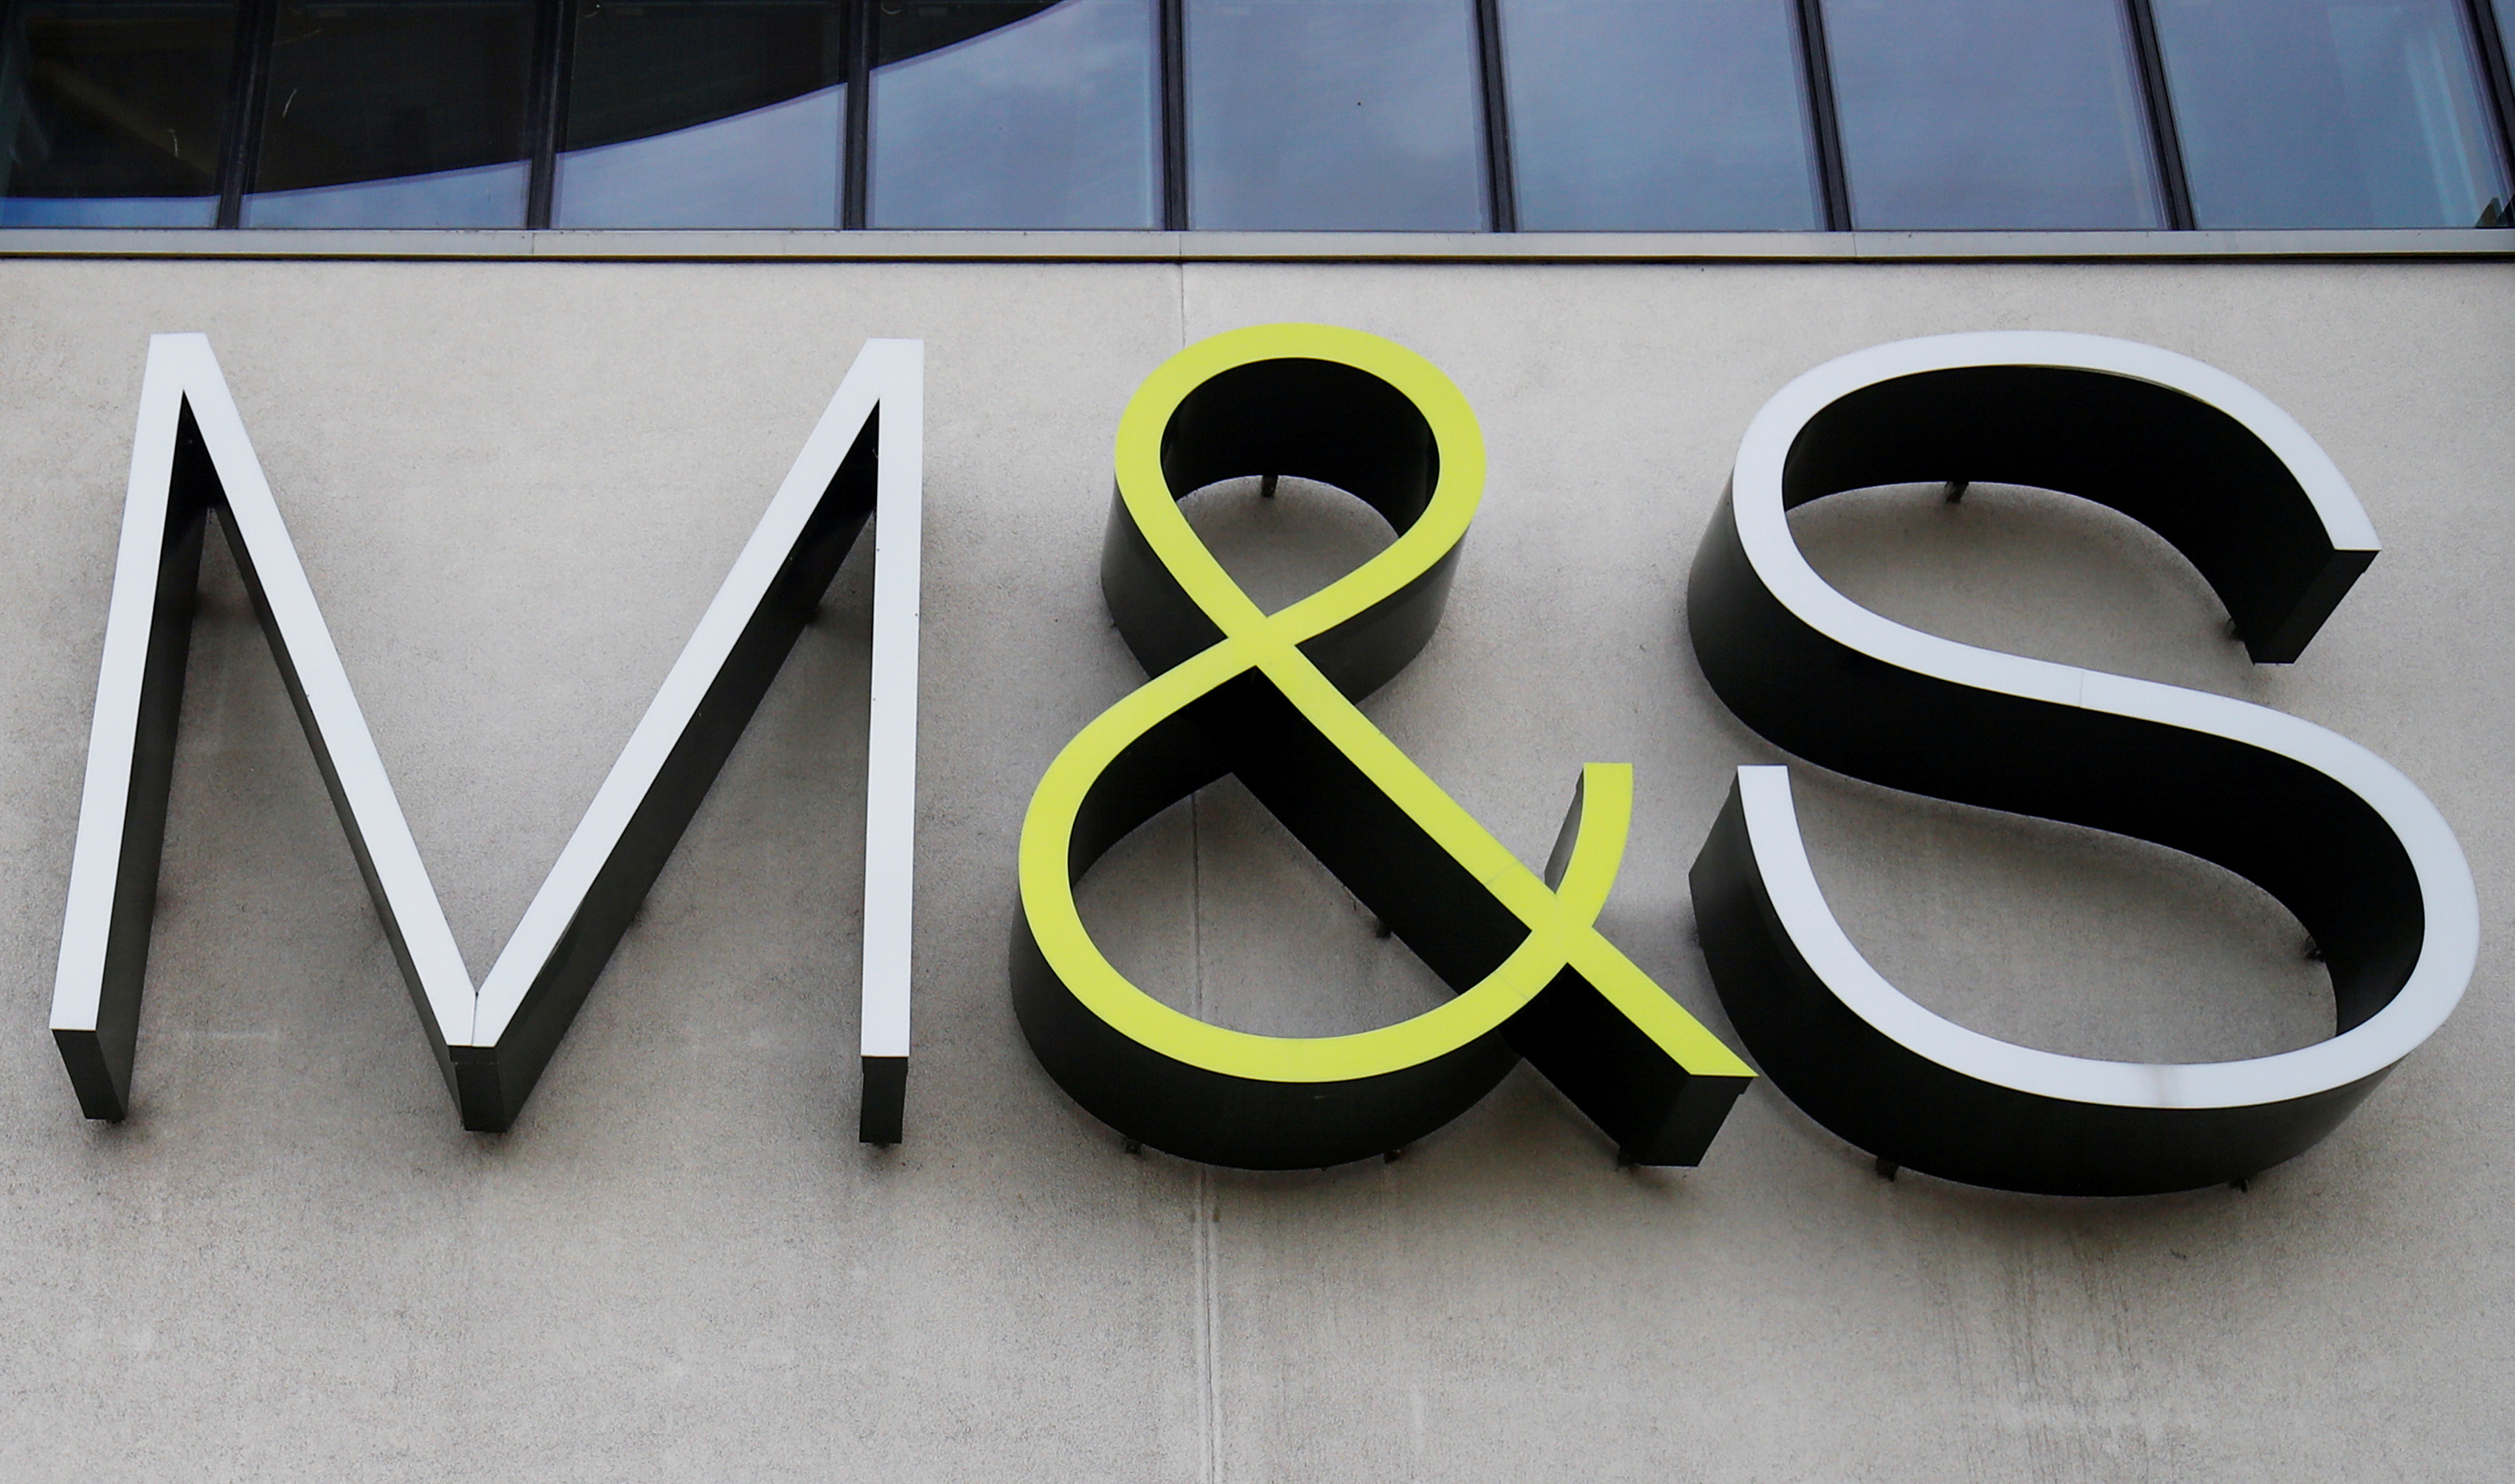 A Marks and Spencer (M&S) logo outside of a store in Cheshire, Britain  August 18, 2020. REUTERS/Jason Cairnduff